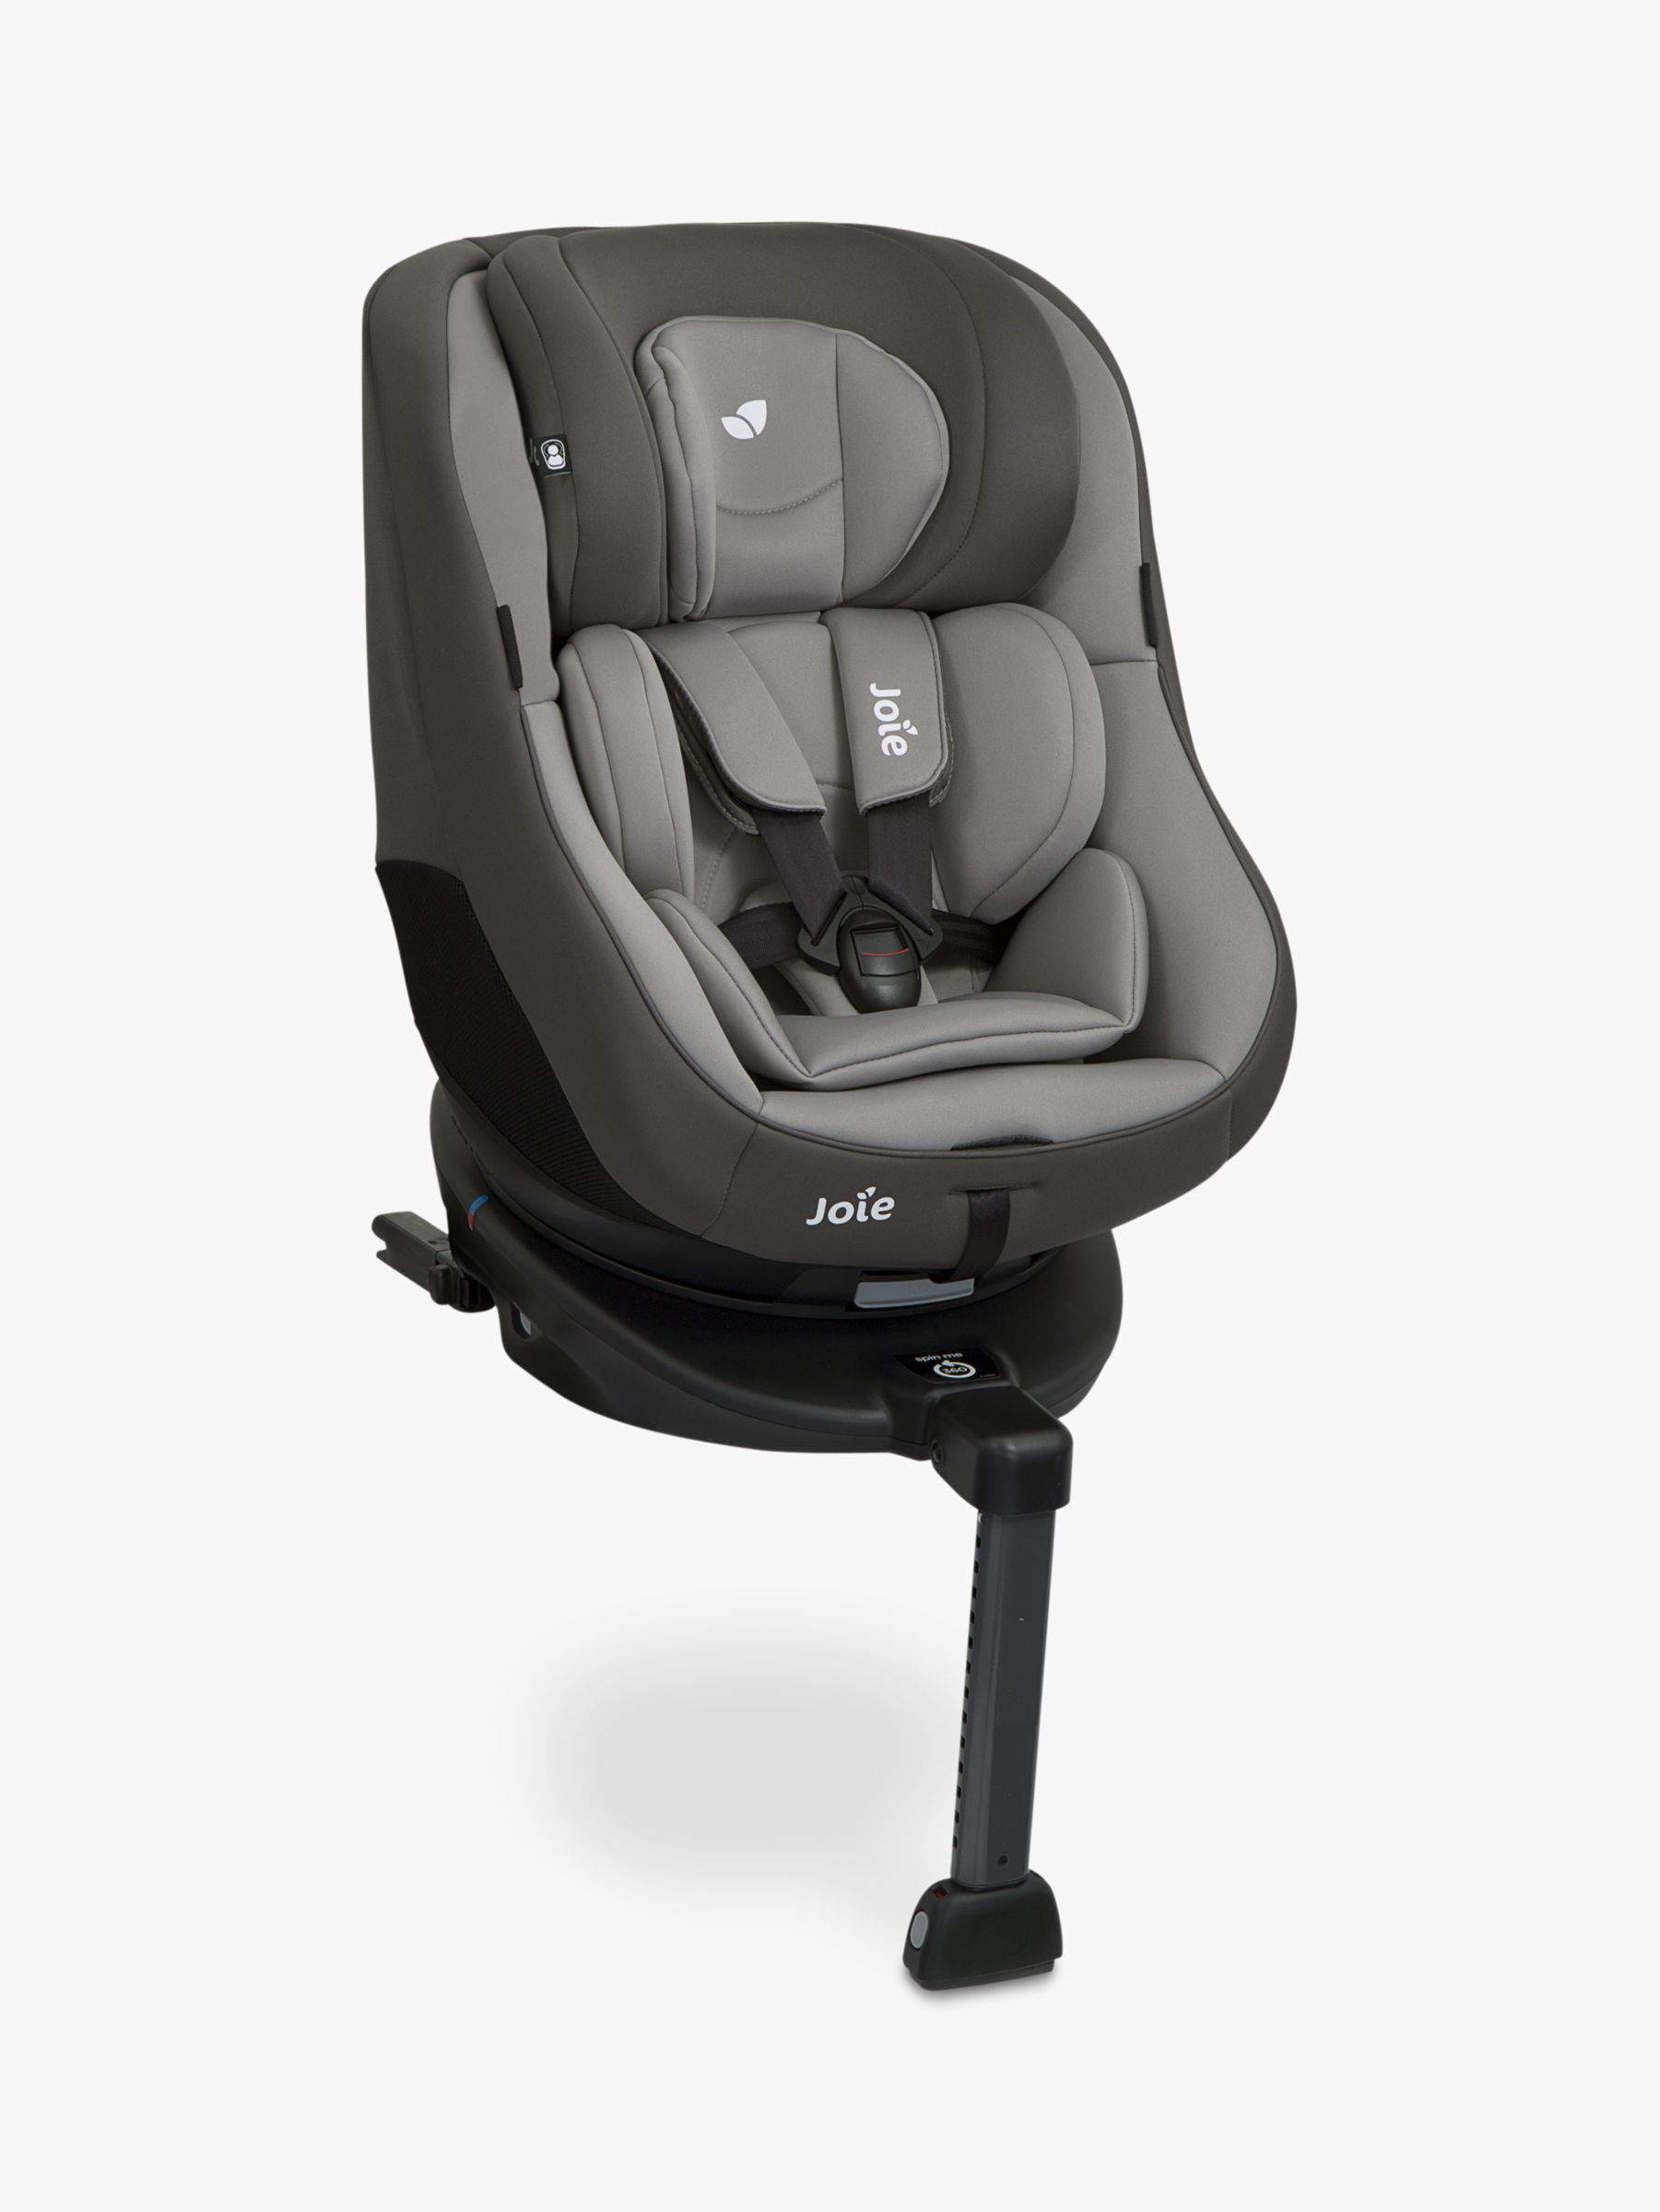 Joie 360 Isofix Installation Joie Spin 360 Group 1 Car Seat Dark Pewter